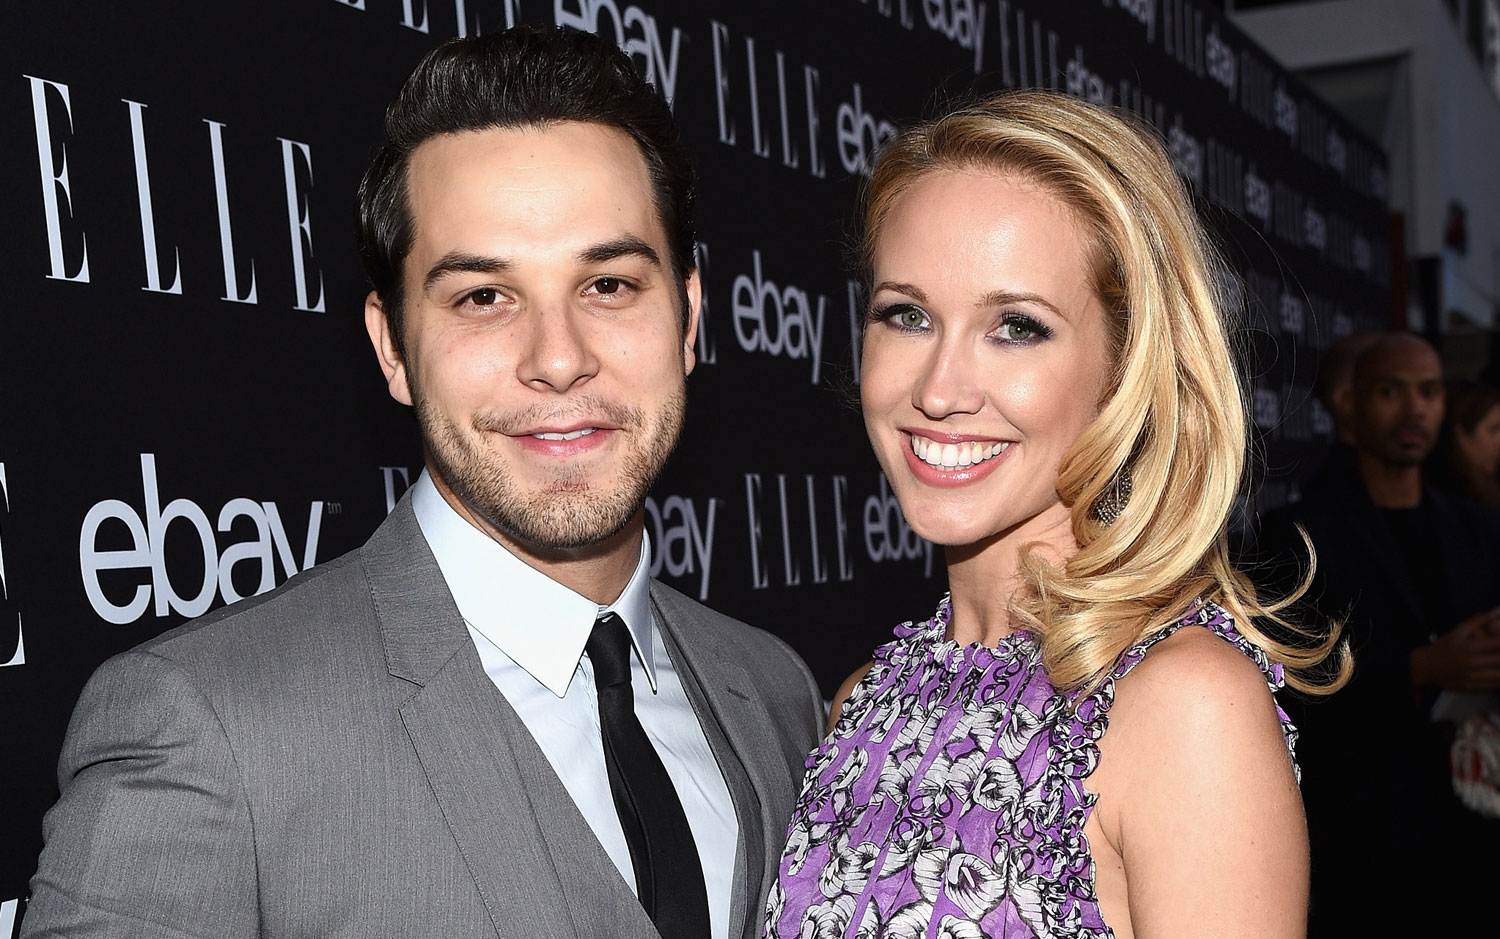 anna camp and skylar astin age difference in relationship